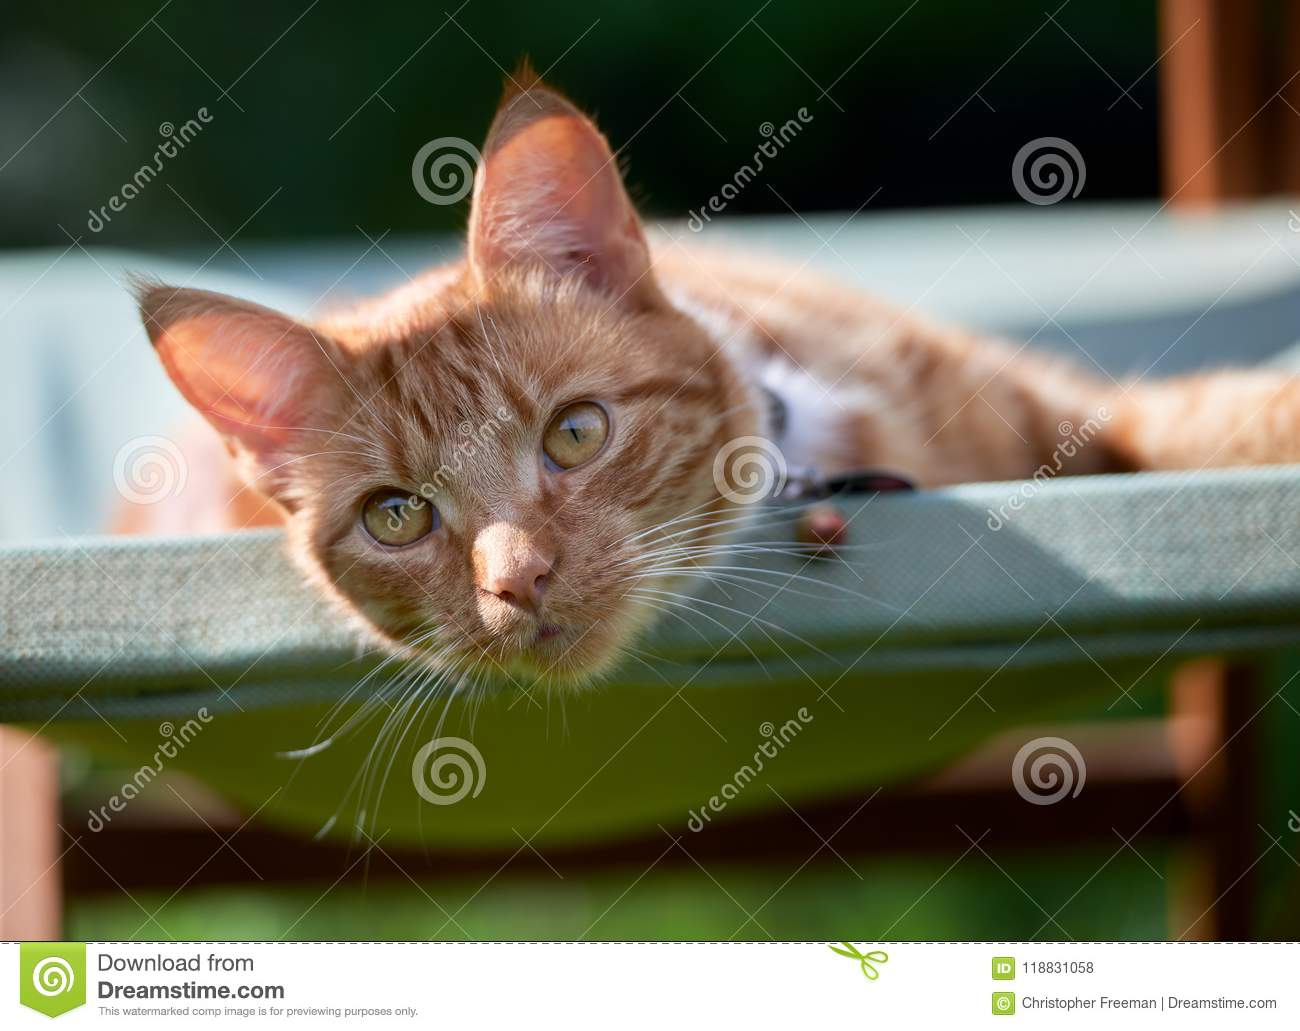 Handsome young ginger red tabby cat laying on a green garden chair looking relaxed